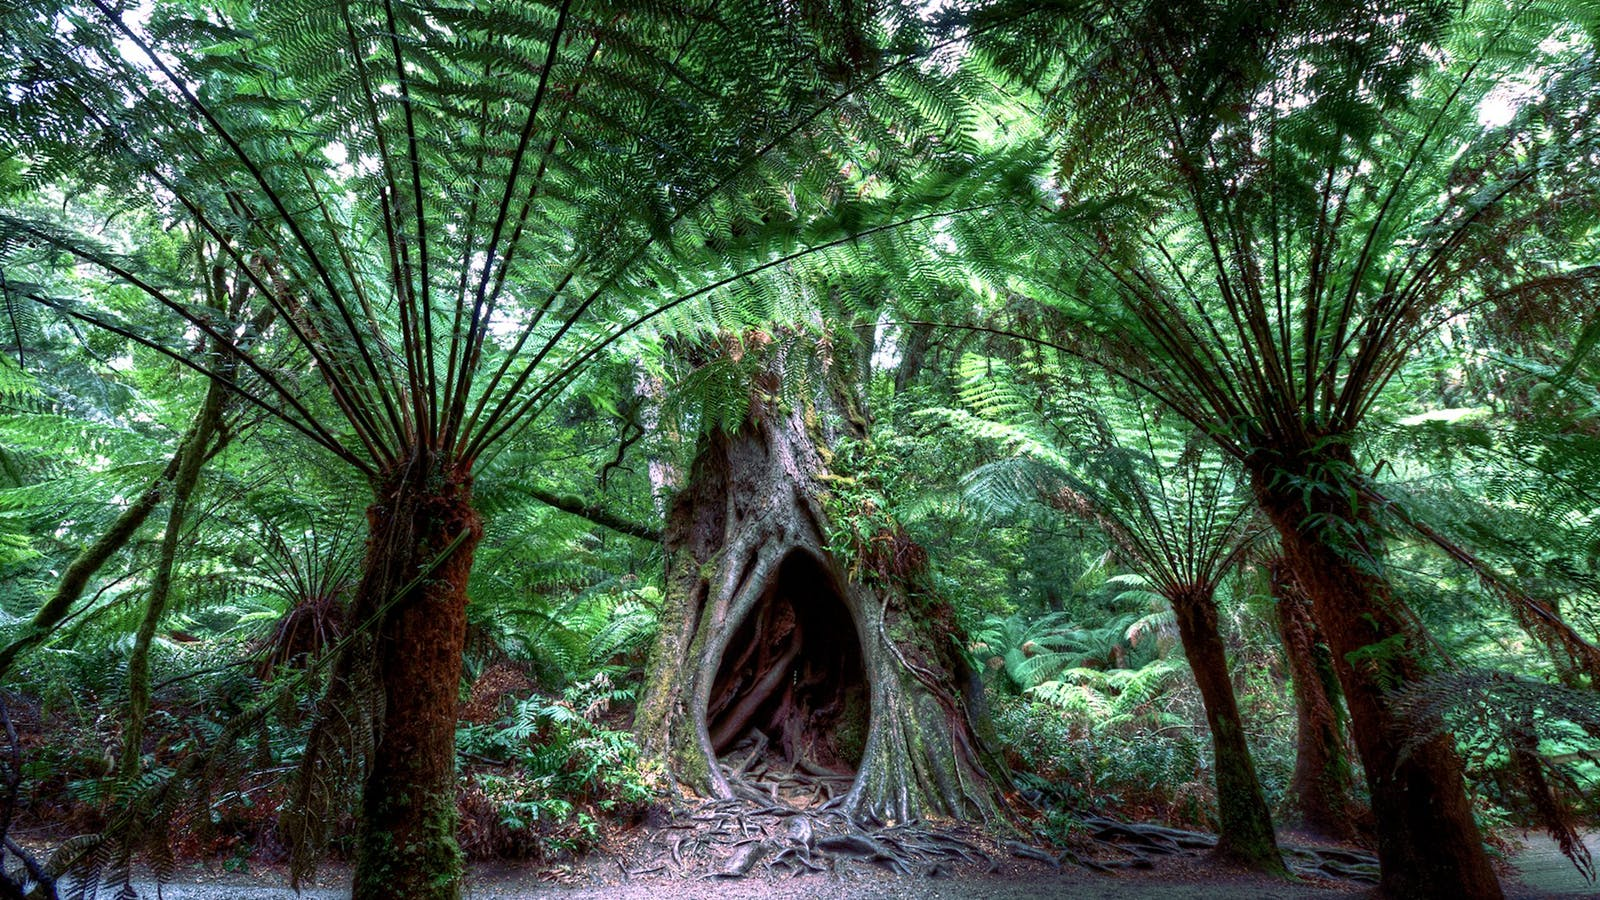 Explore the pristine Otway Rainforest on the Great Ocean Road